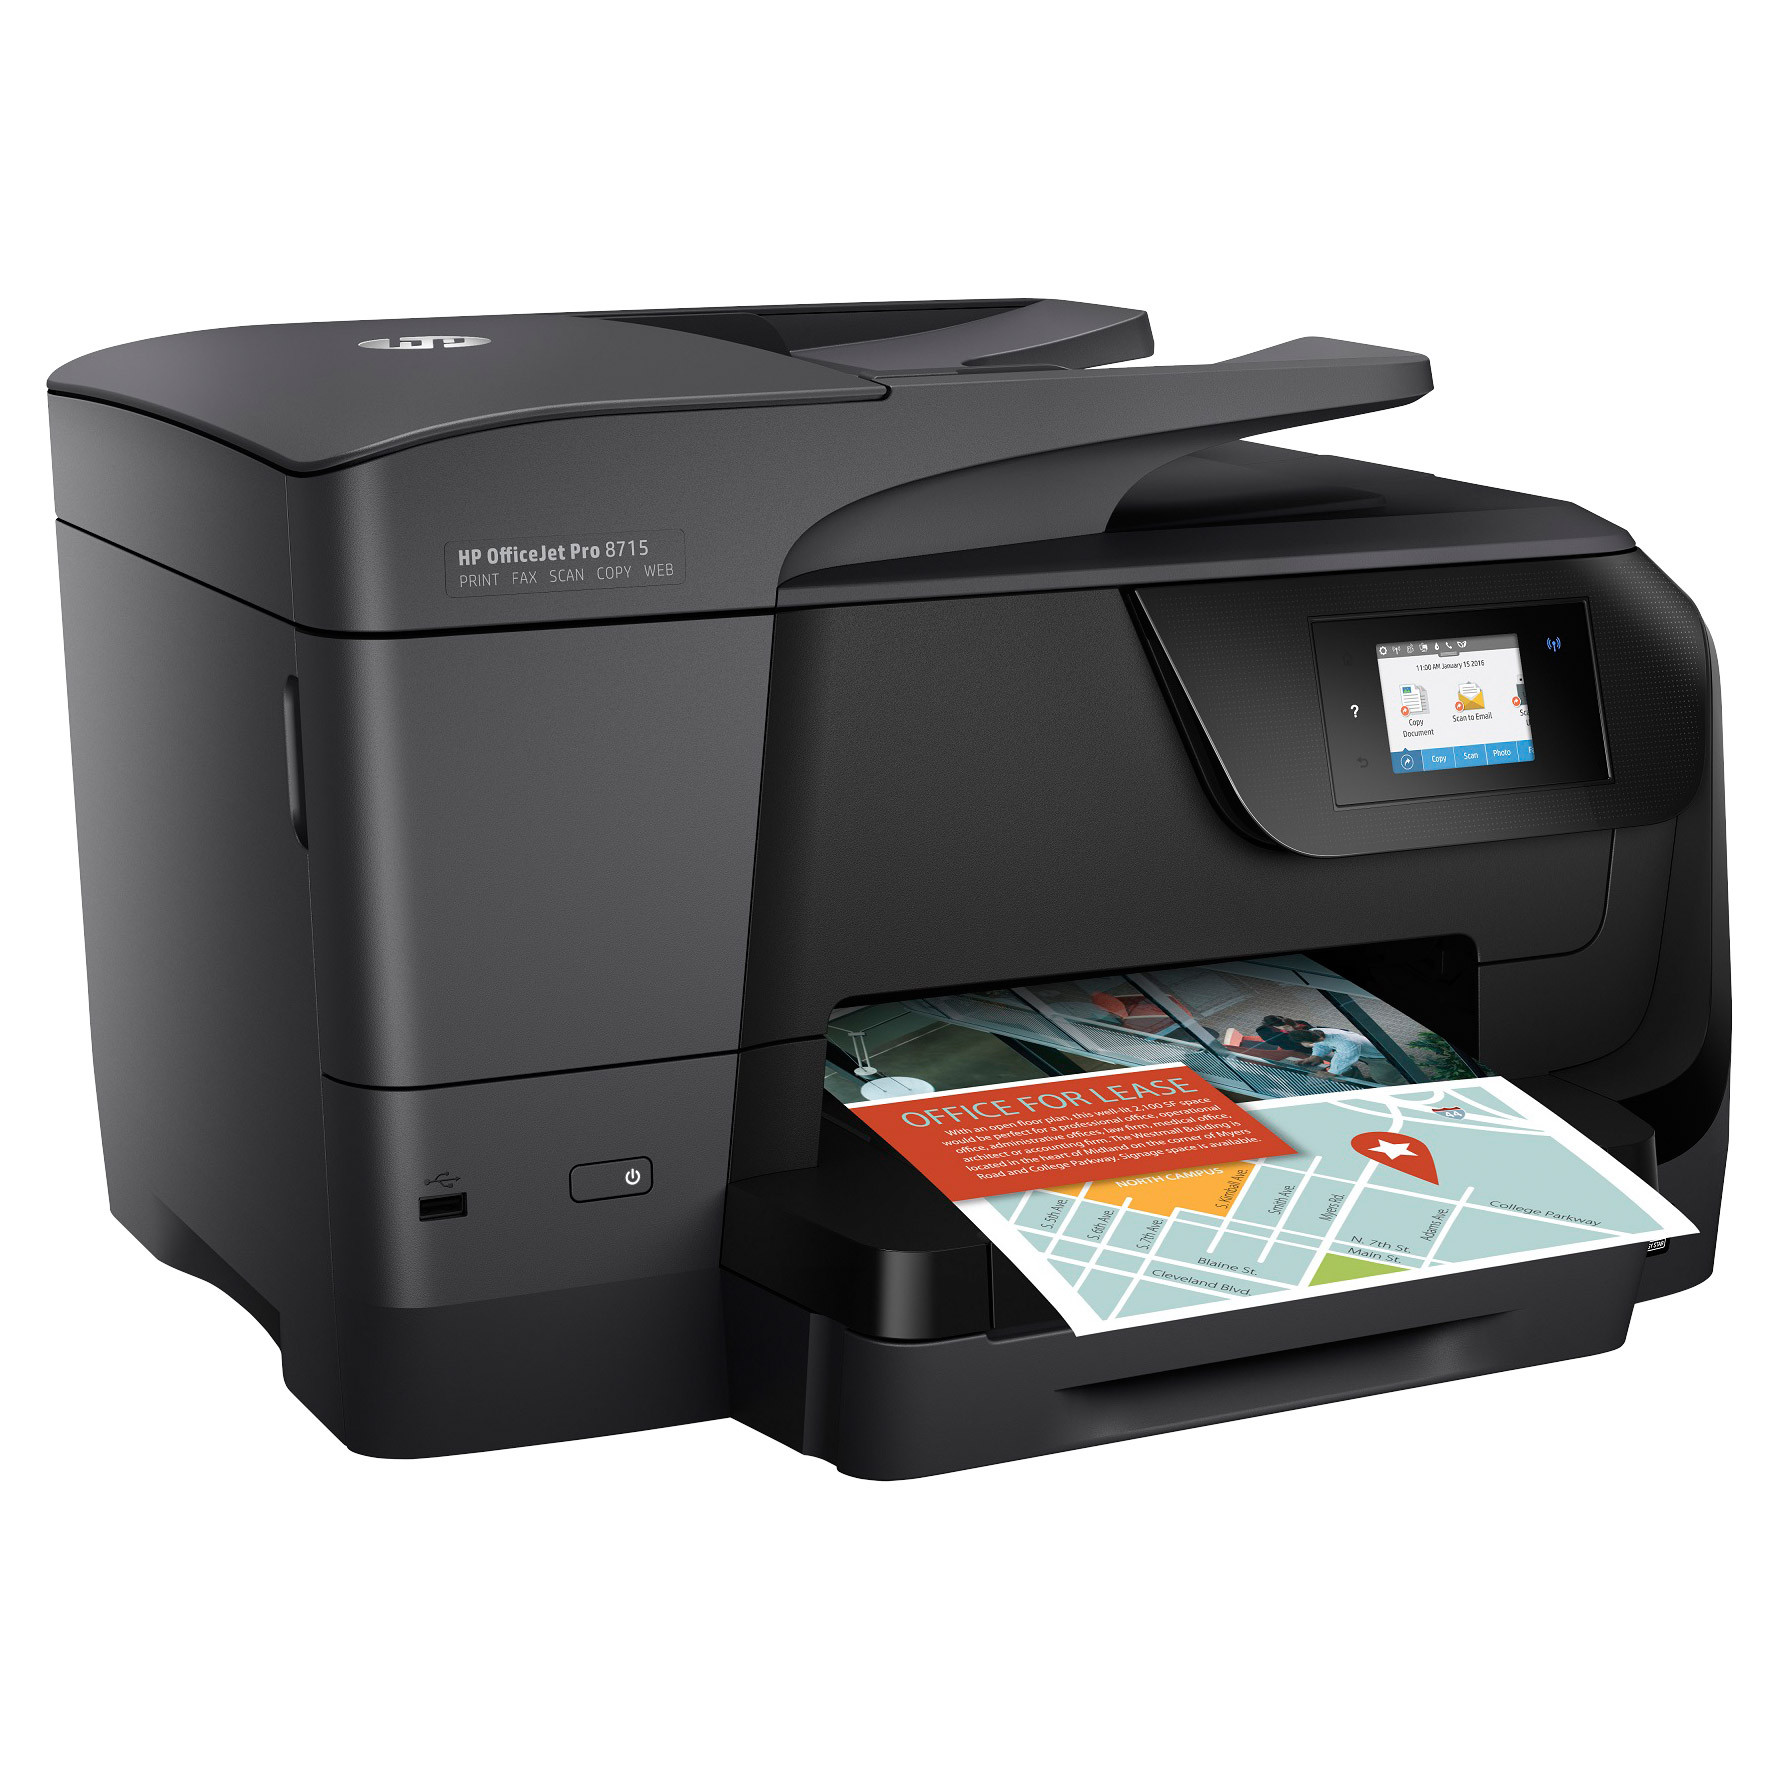 HP Officejet Pro 8715 All-in-One Color Inkjet Printer by HP